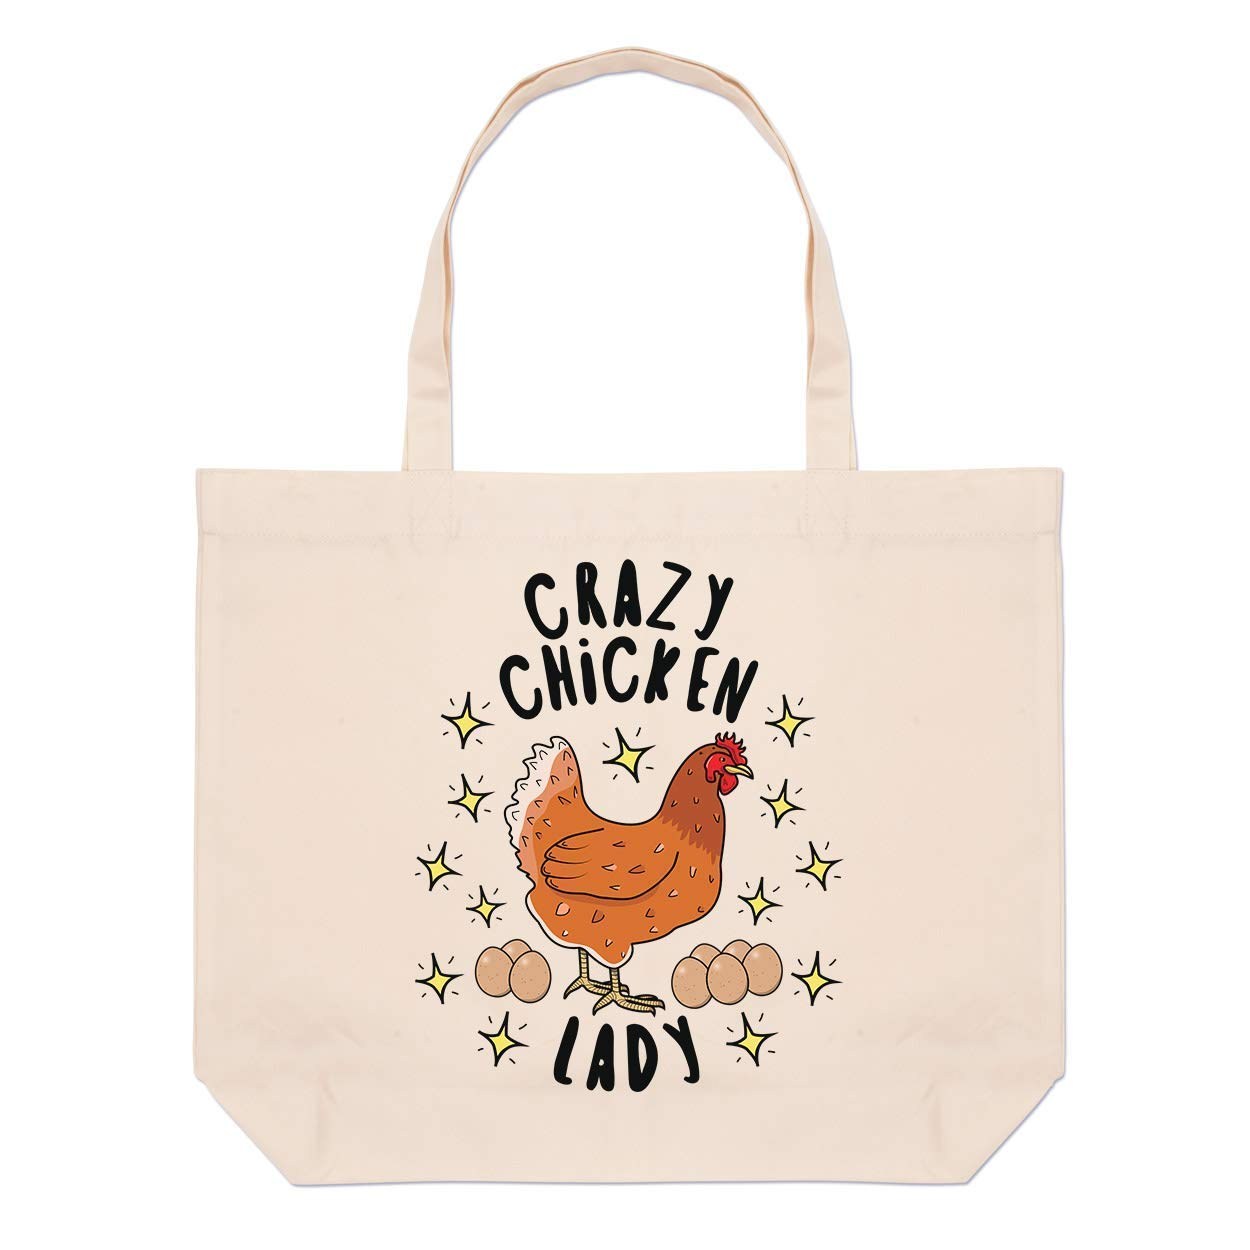 Crazy Chicken Lady Stars Large Beach Tote Bag